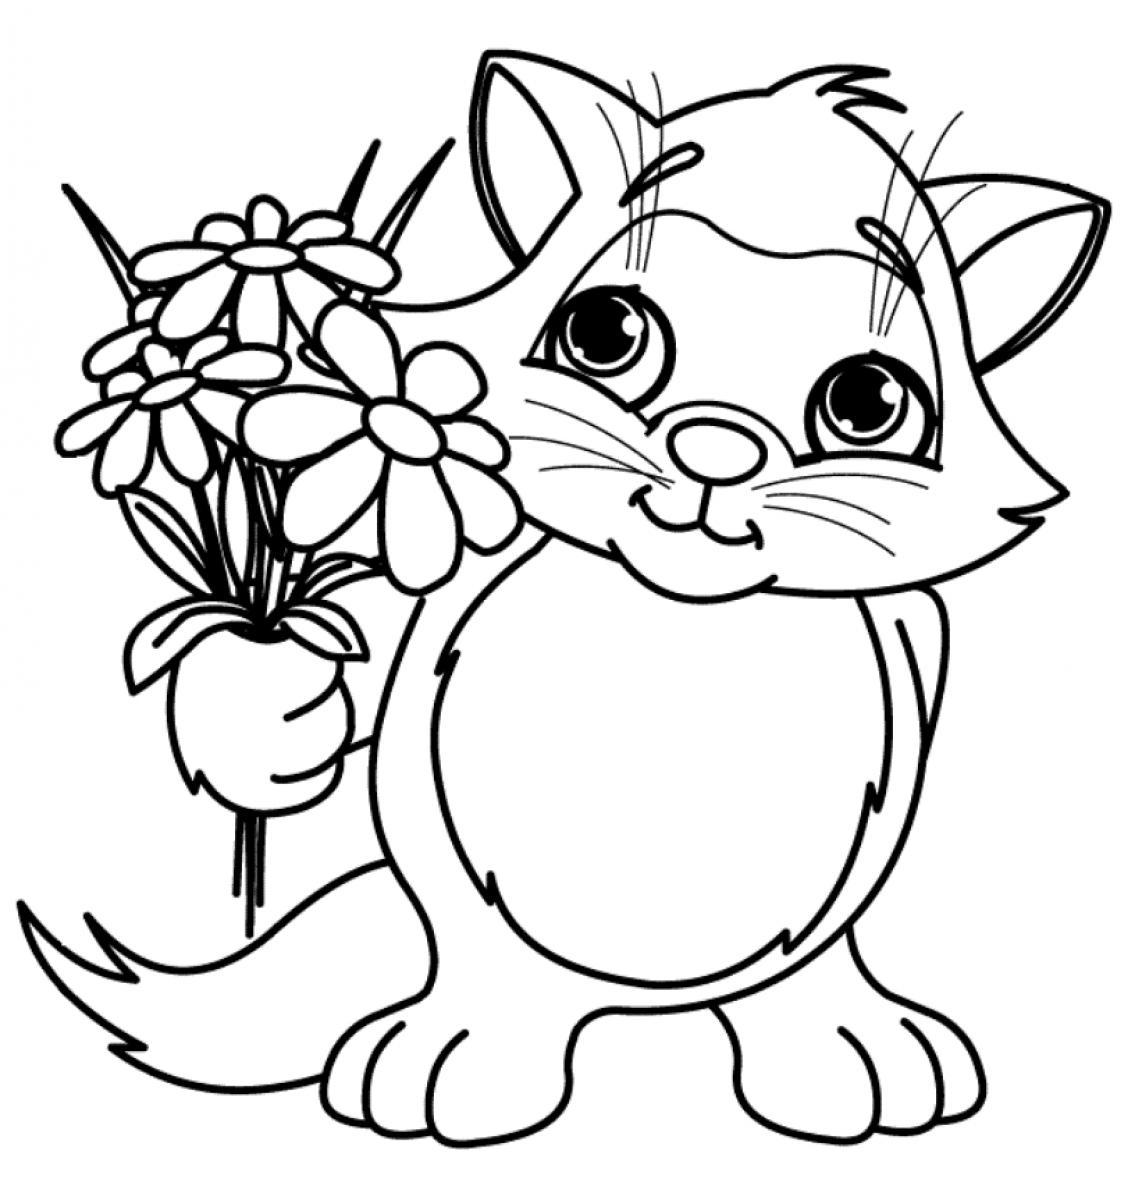 coloring flower lily flower coloring pages download and print lily flower flower coloring